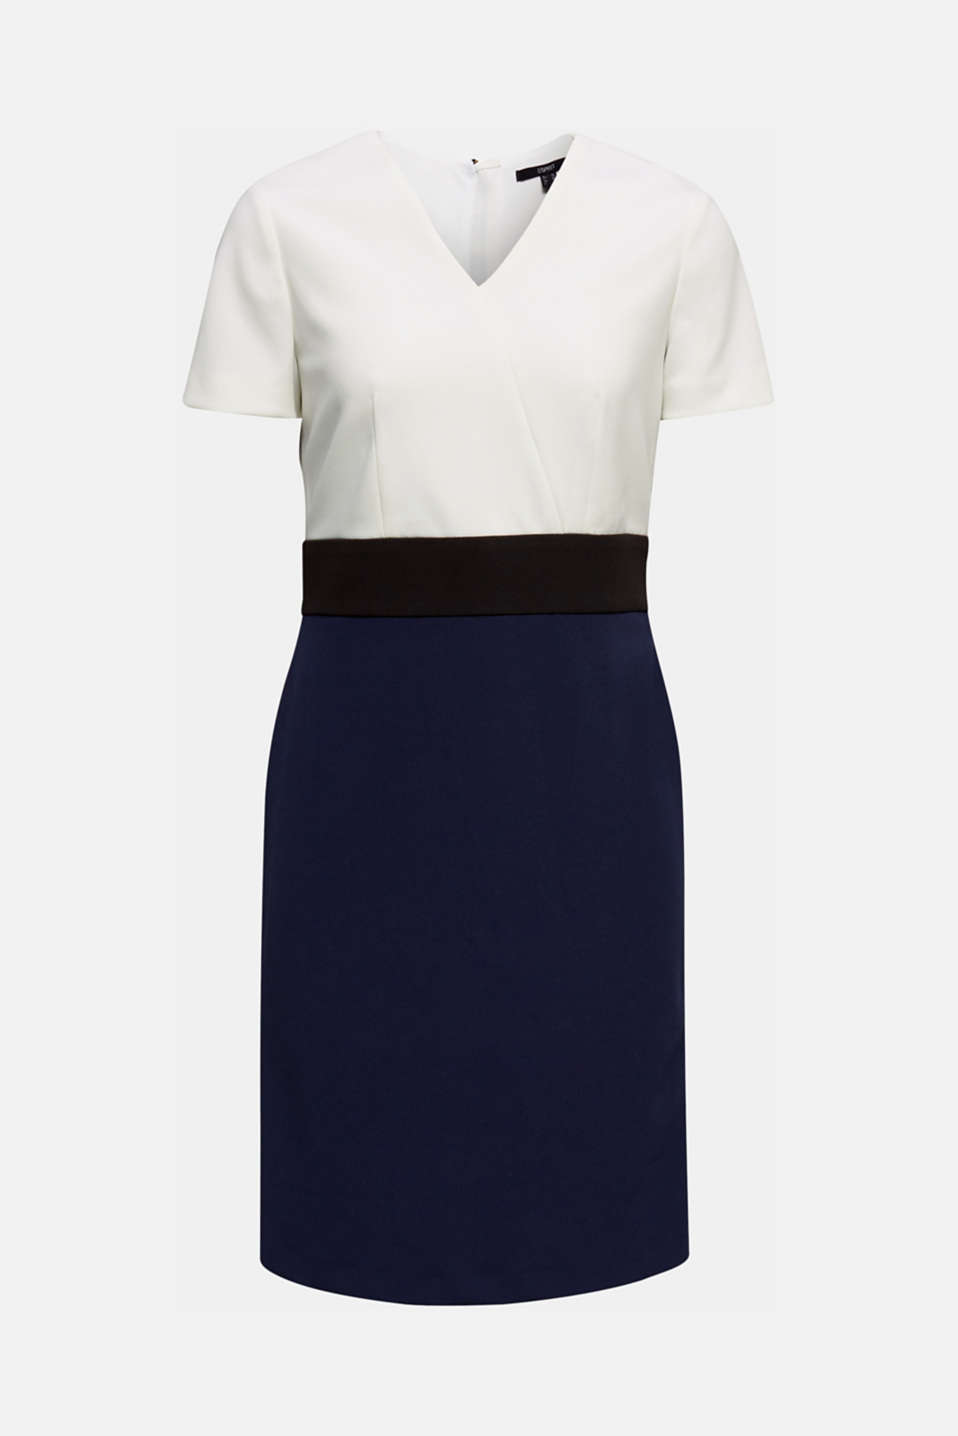 Sheath dress in a colour block look, NAVY, detail image number 6